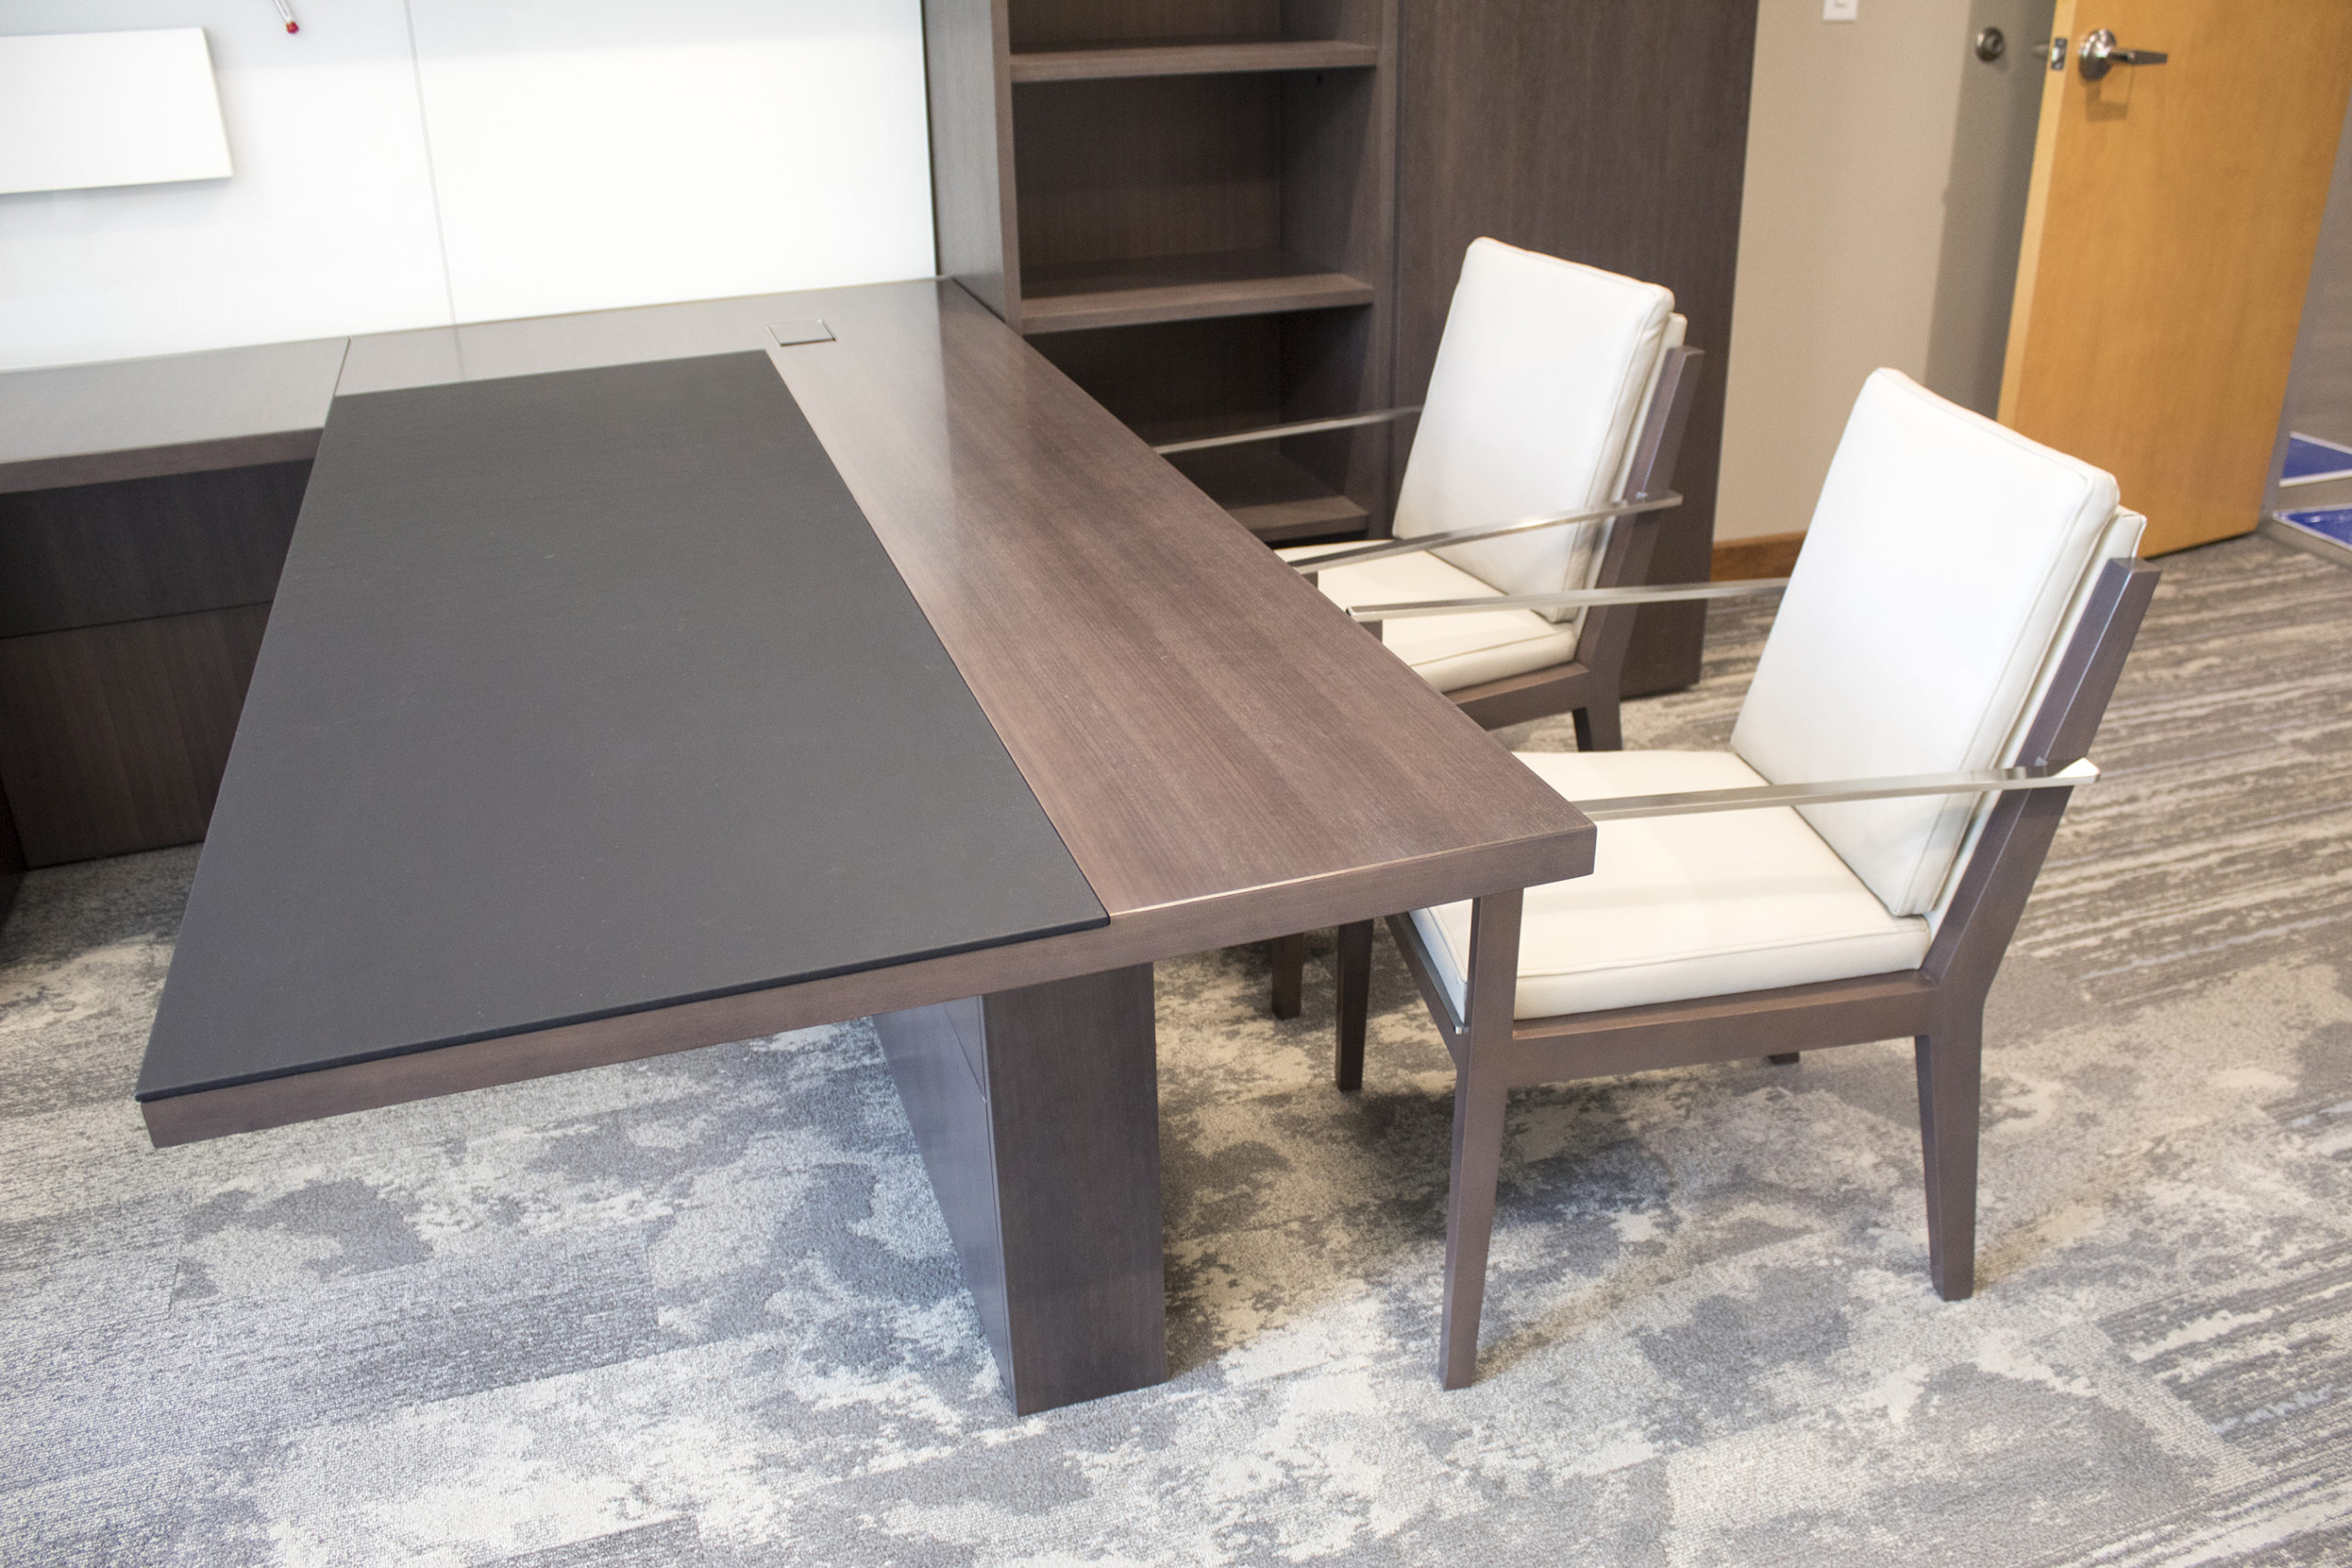 Executive Office with White and Brown Workstation Desk and Guest Chairs